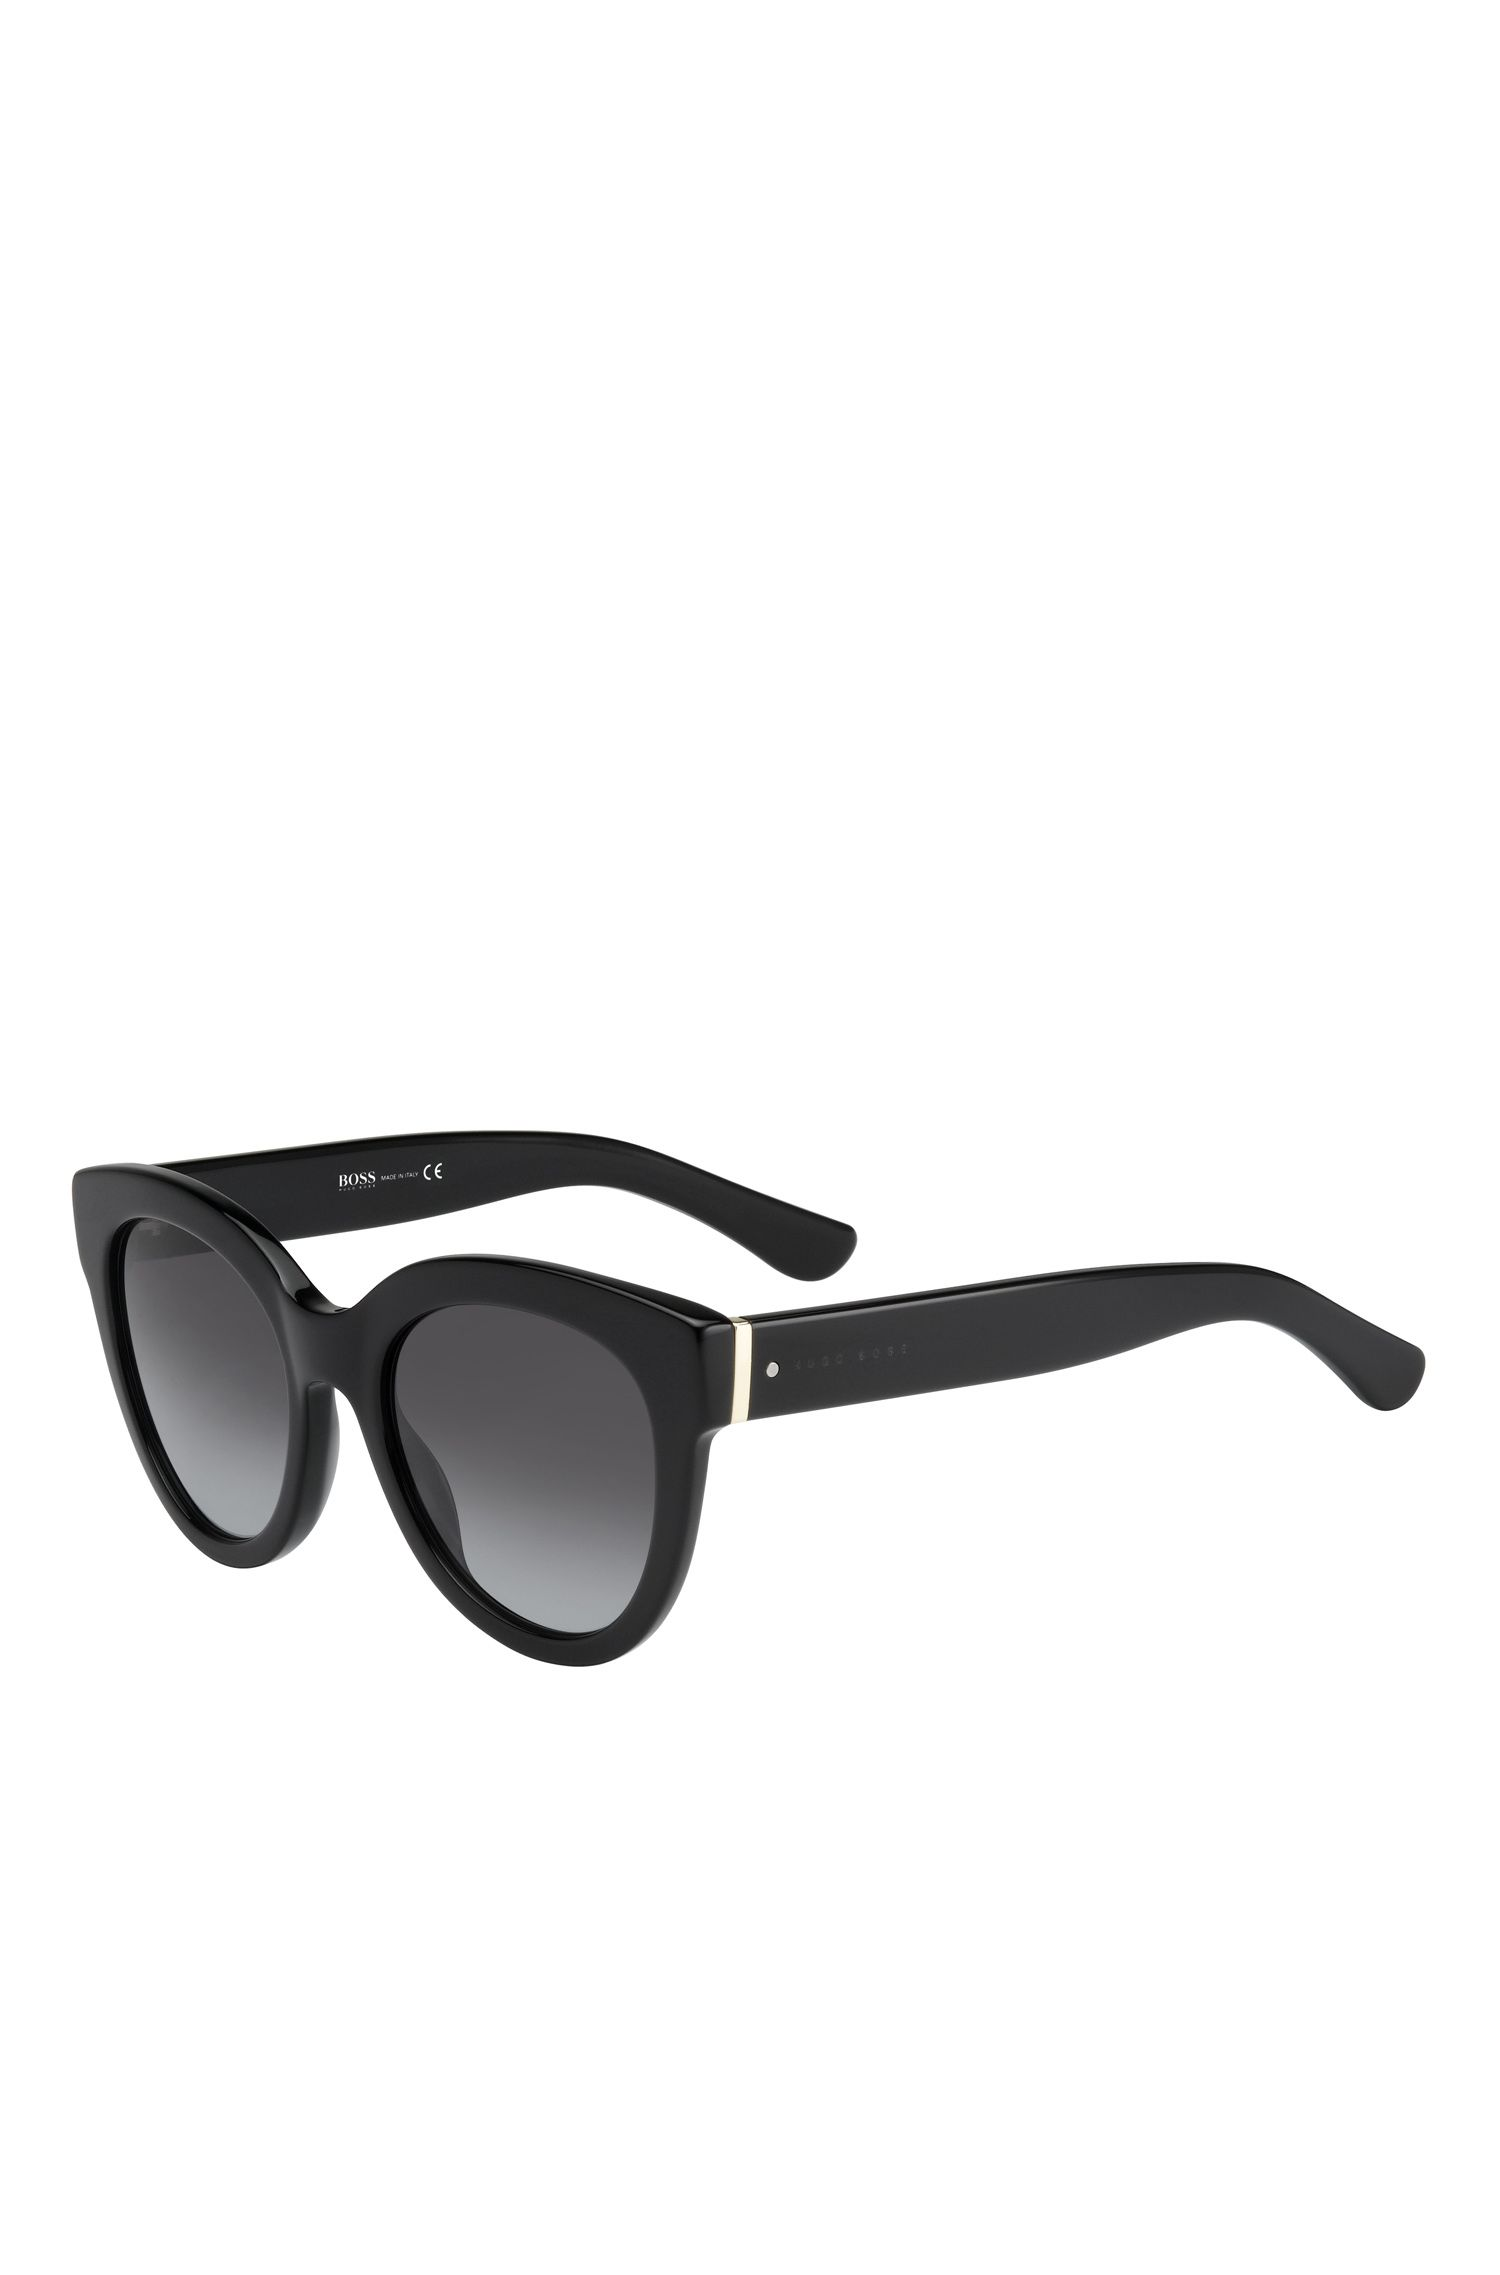 'BOSS 0675S' | Black Gradient Lens Cateye Sunglasses